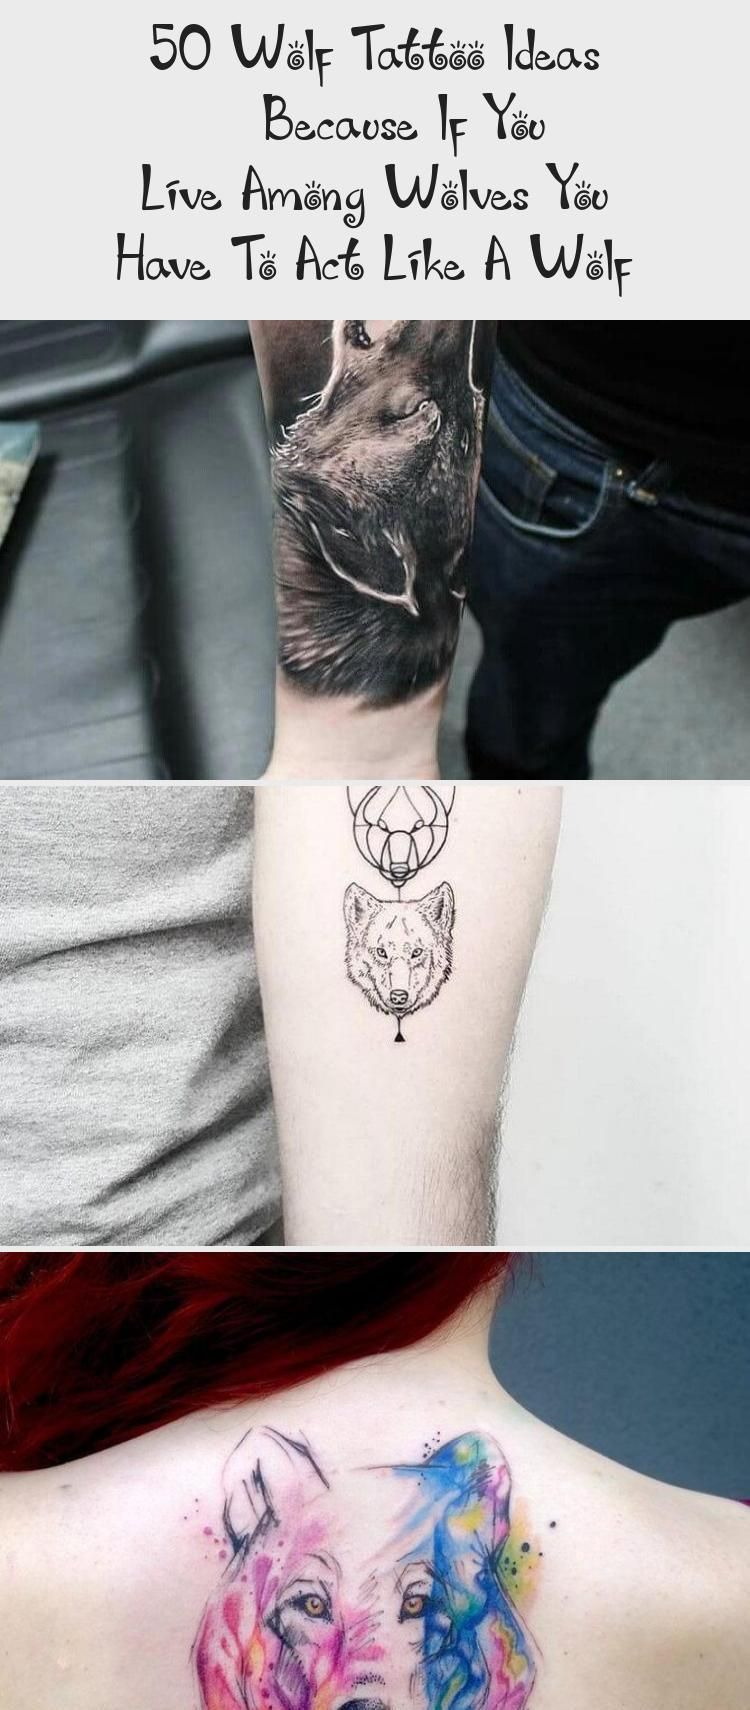 50 Wolf Tattoo Ideas – Because If You Live Among Wolves You Have To Act Like A Wolf – Best Tattoos –  50 Wolf Tattoo Ideas – Because If You Live A…